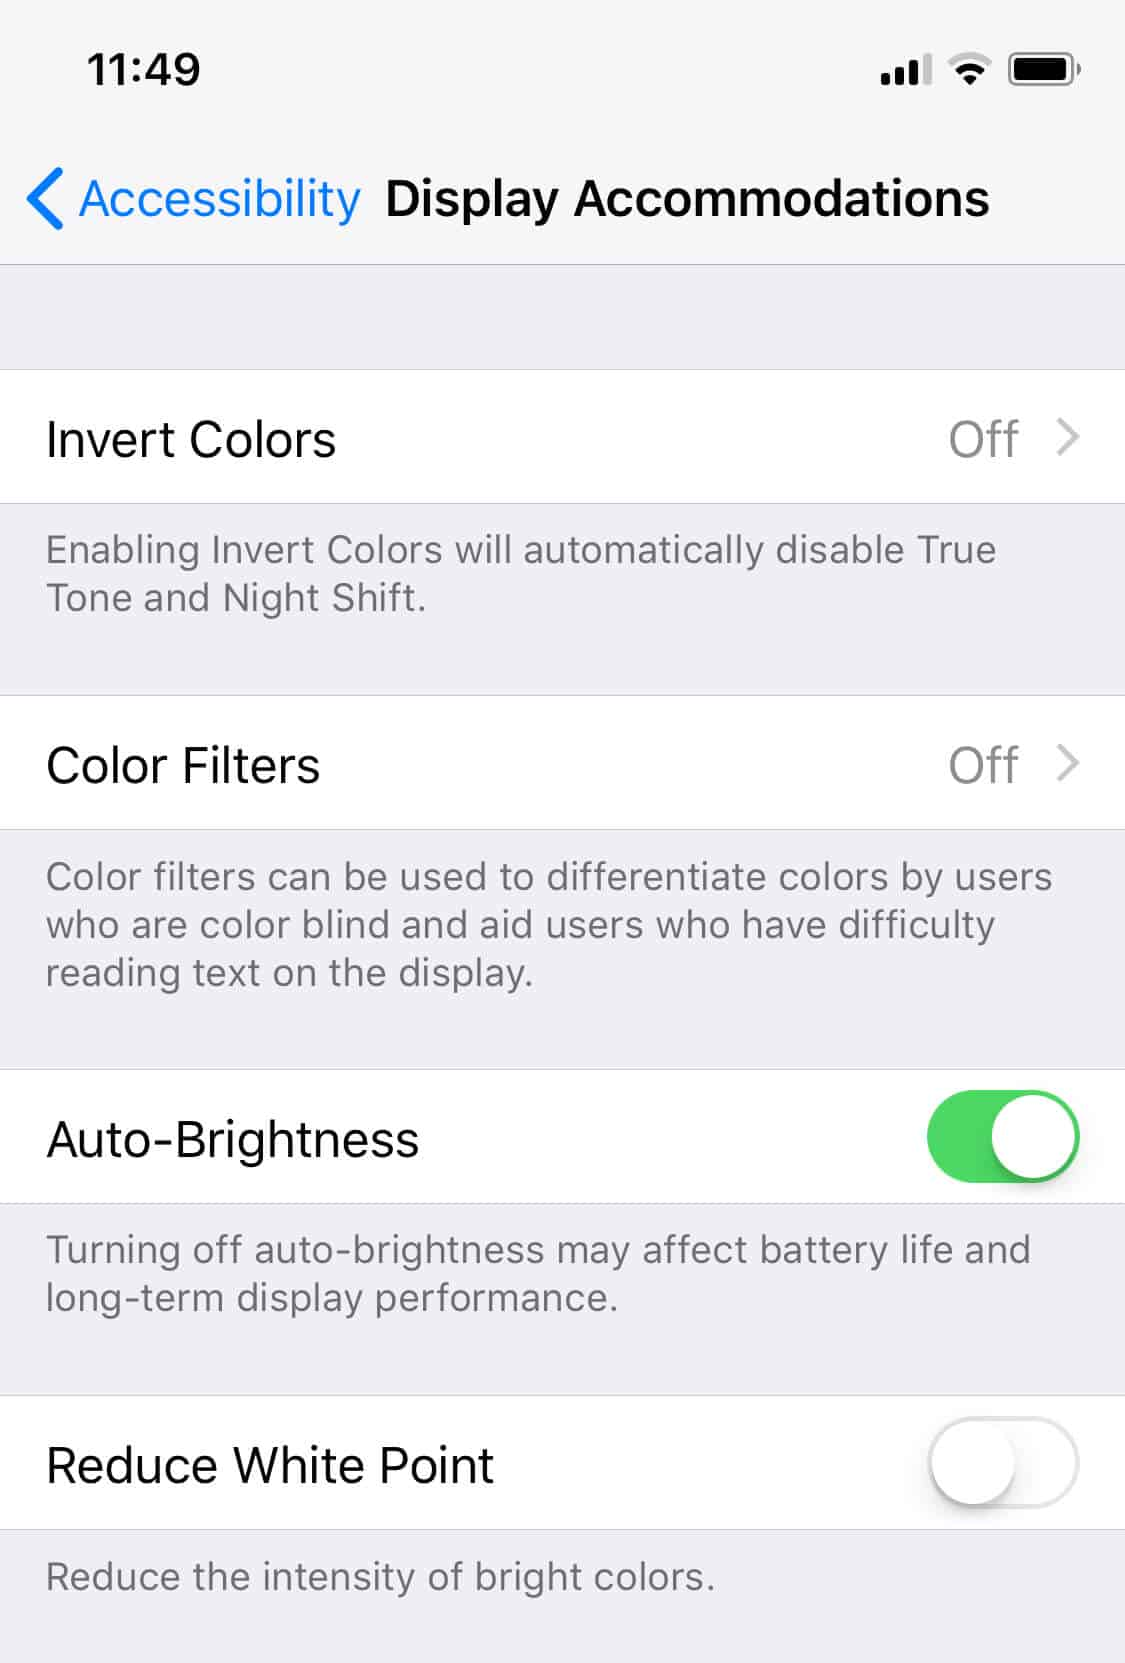 Accessibility settings on iOS